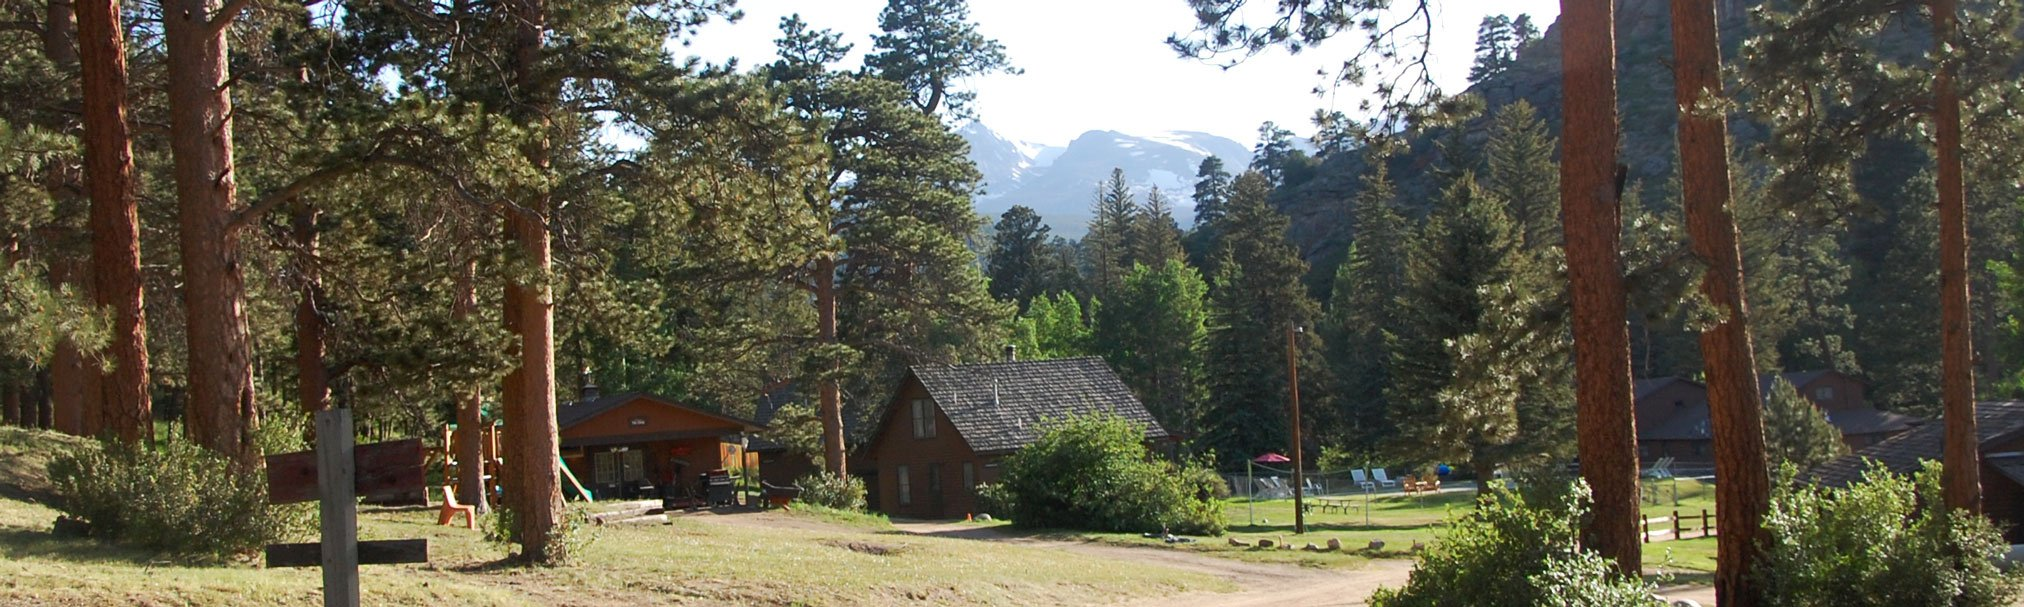 Camping-Rocky-Mountains-2024-0618